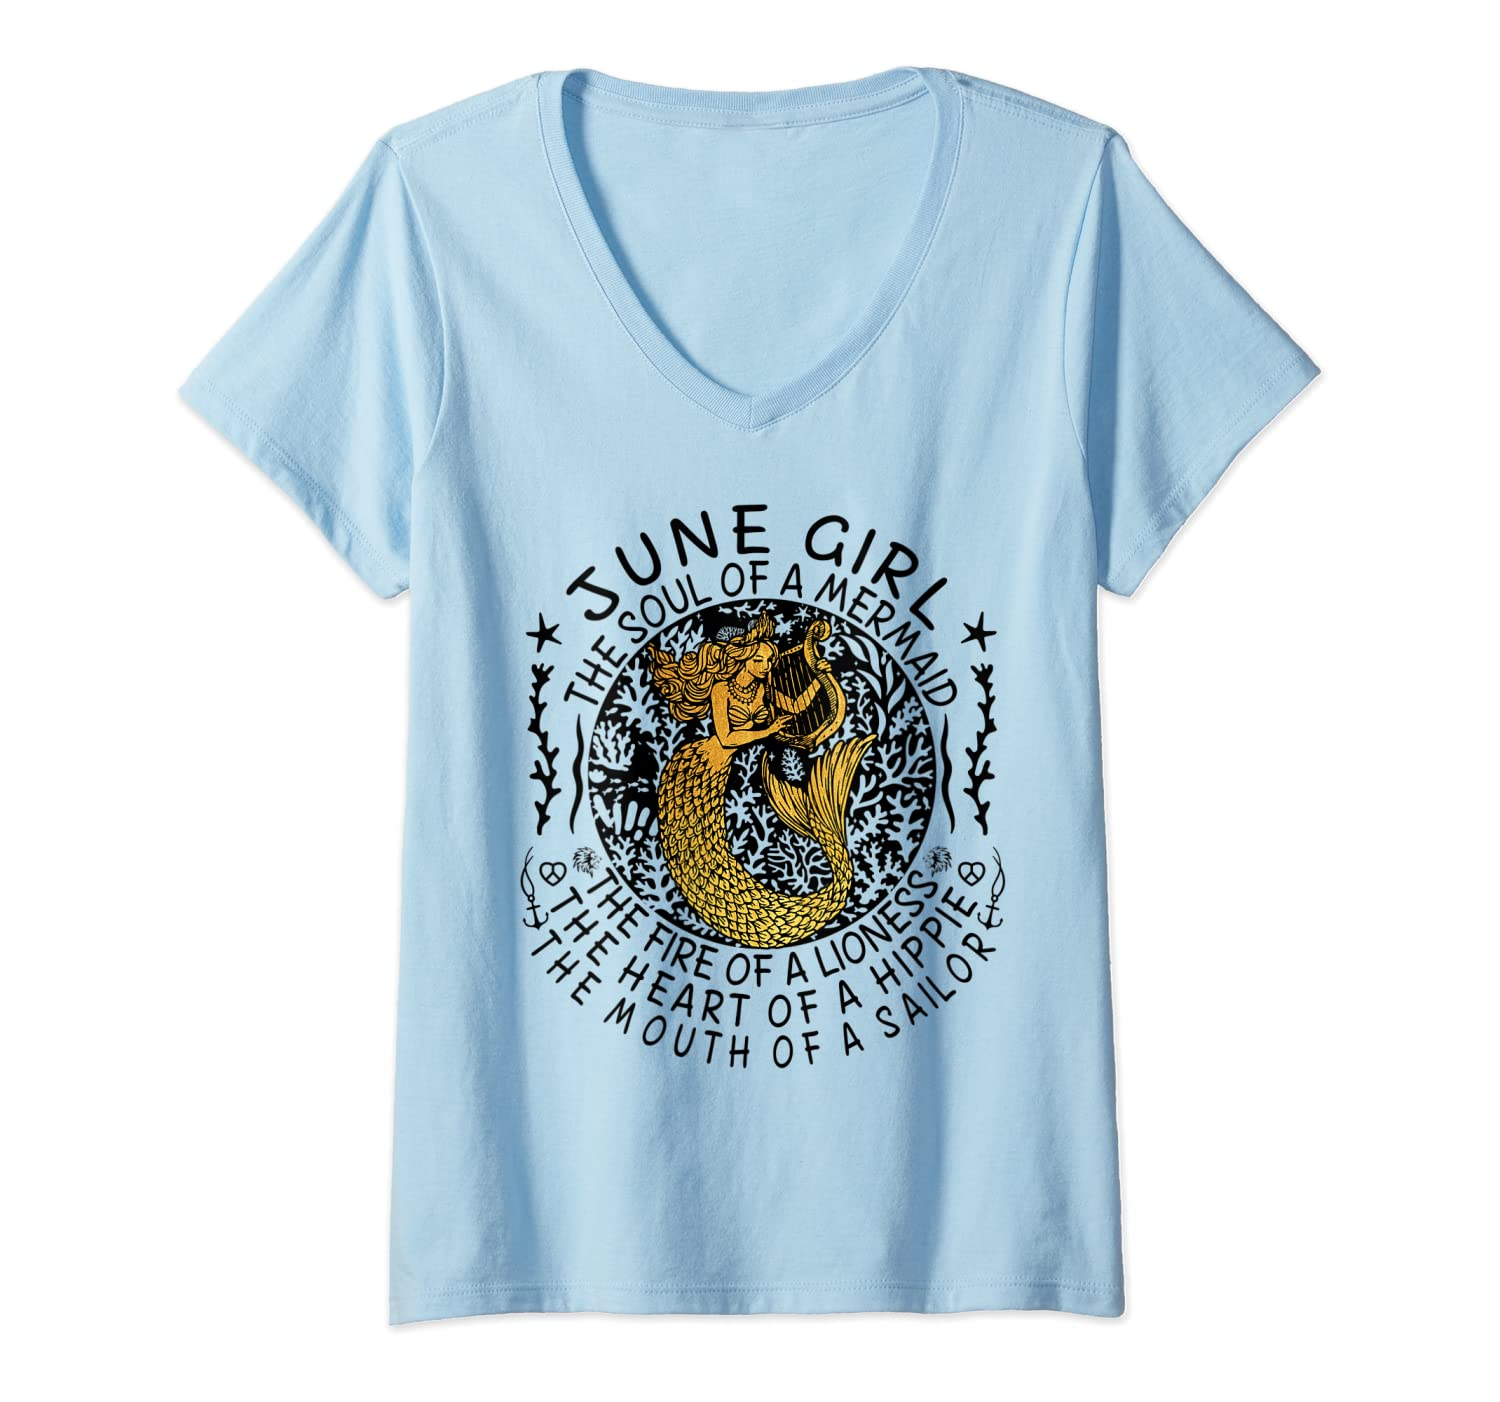 June Girl The Soul Of A Mermaid Tshirt Funny Gifts T Shirt